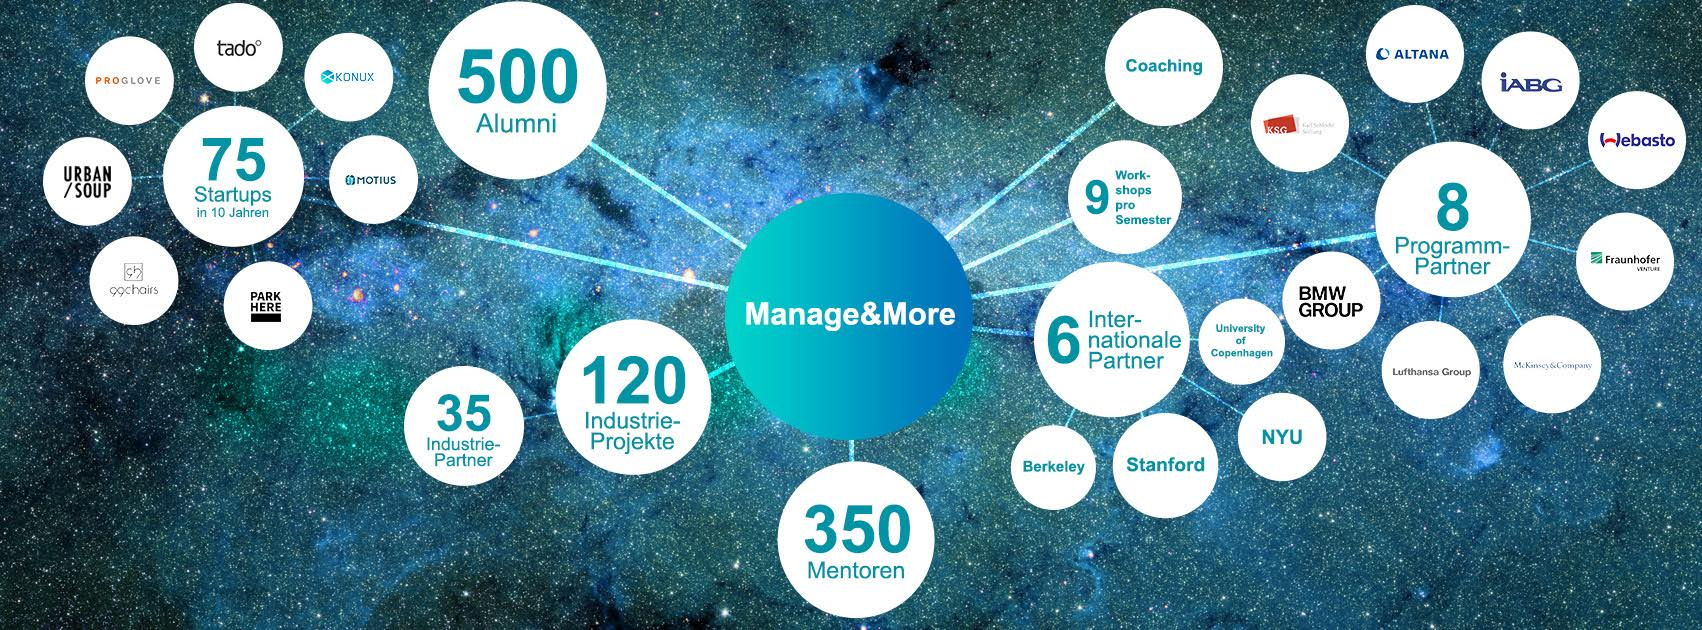 manage&more_infoevent